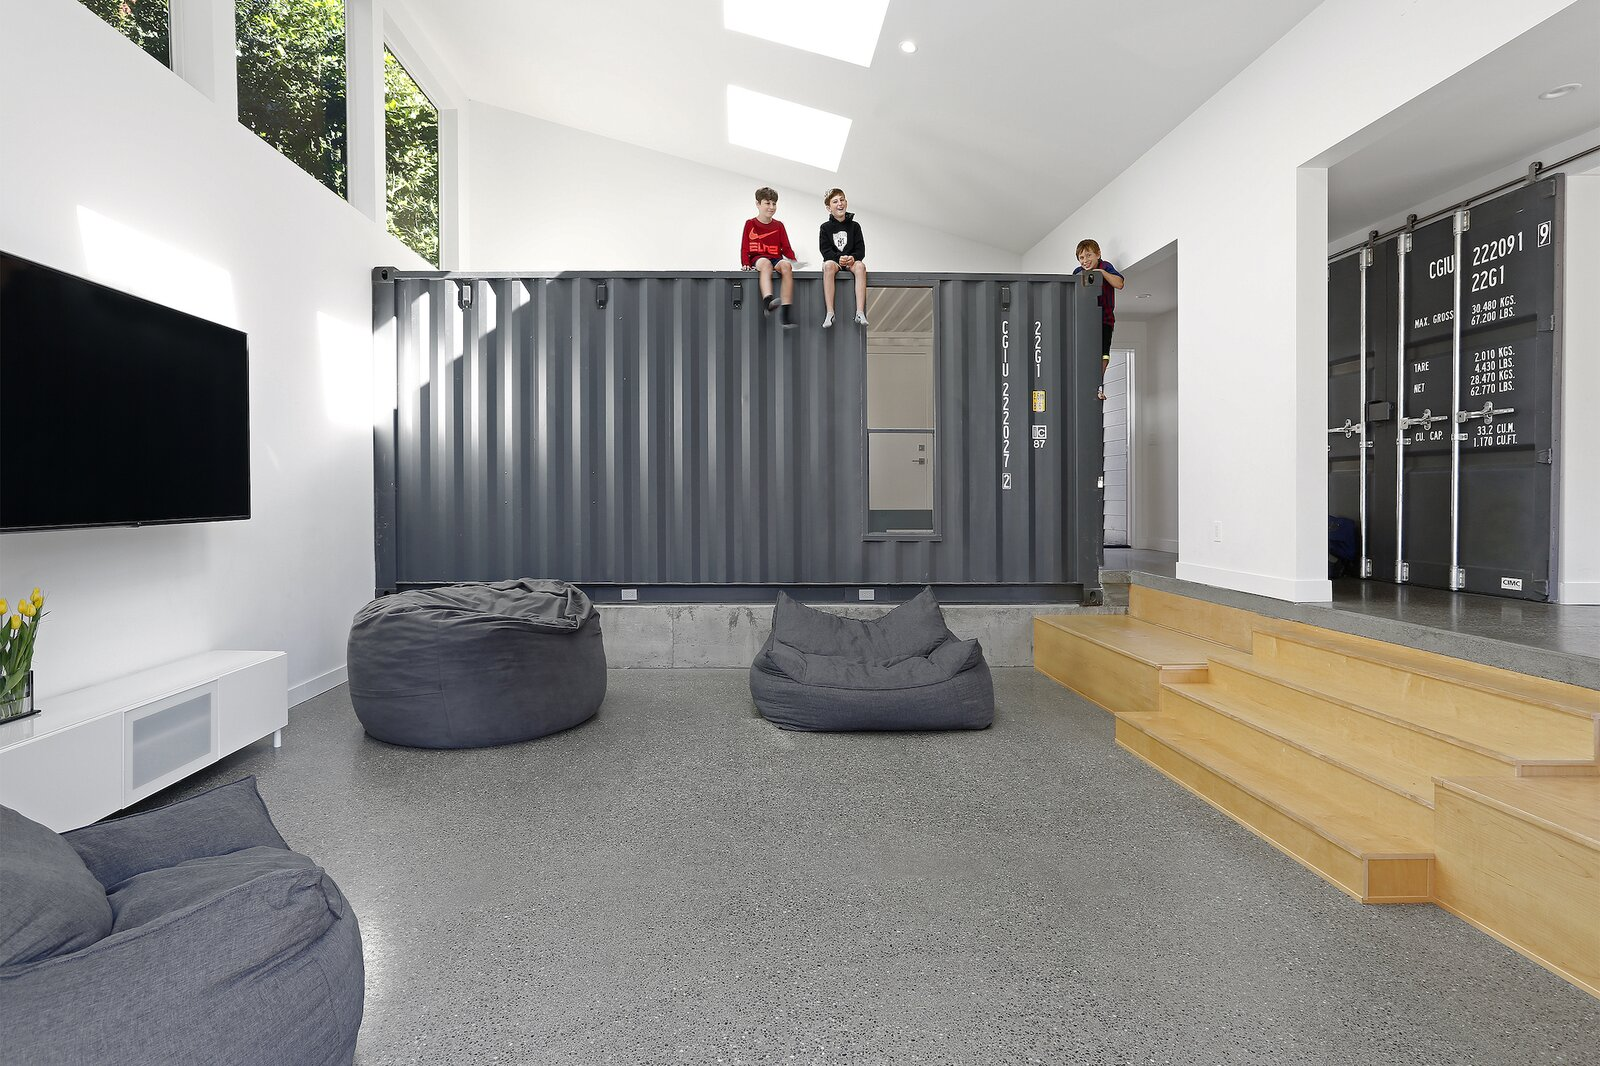 inspirebox_extension_containers_1